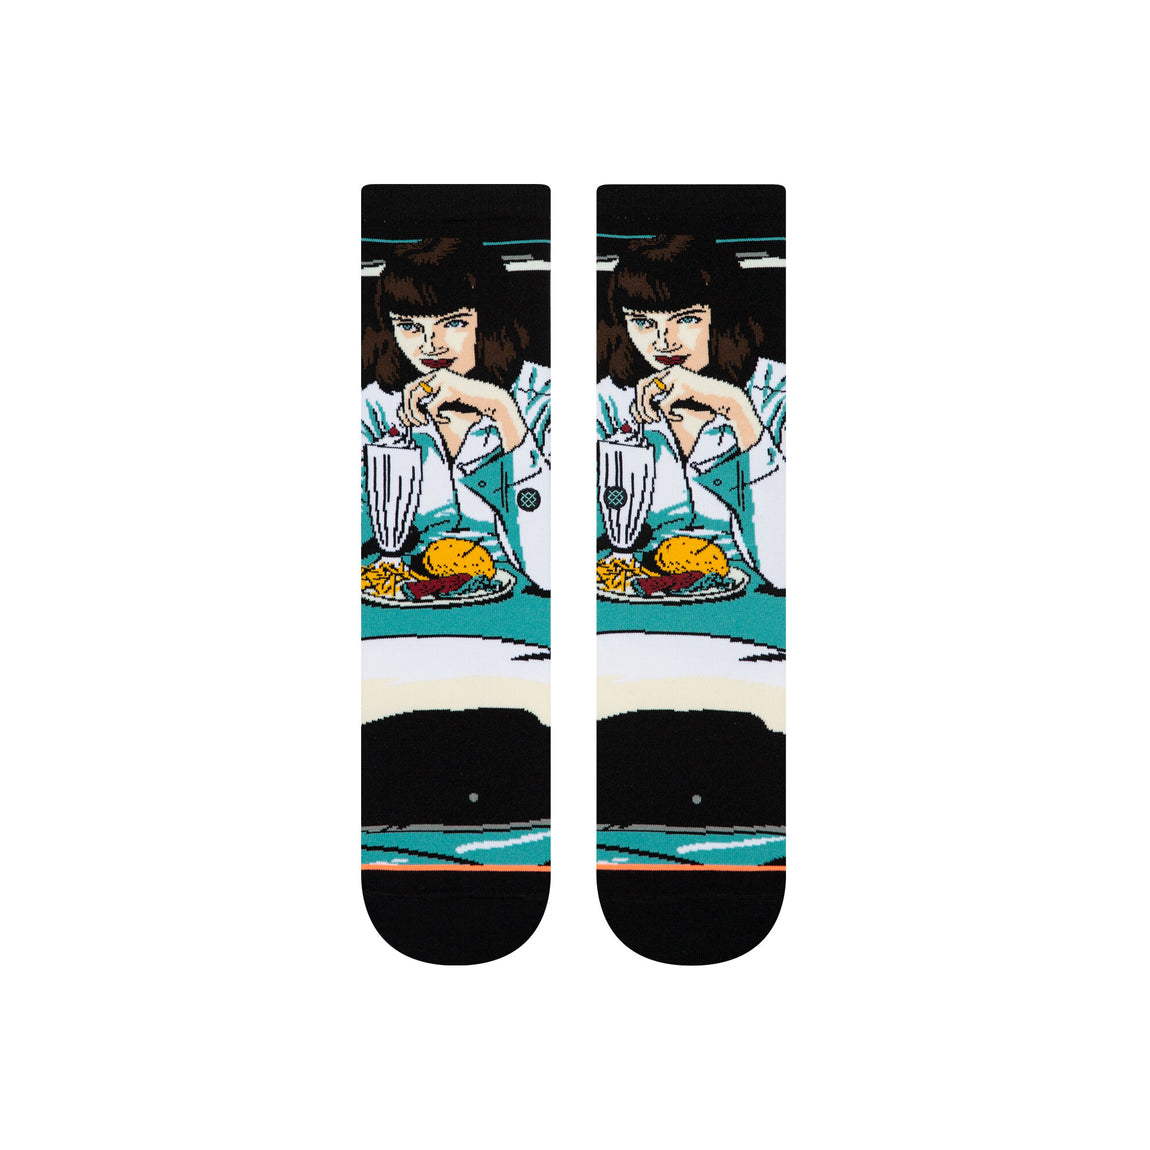 Stance Pulp Fiction Mia Booth Socks (Black) - Stance Pulp Fiction Mia Booth Socks (Black) -